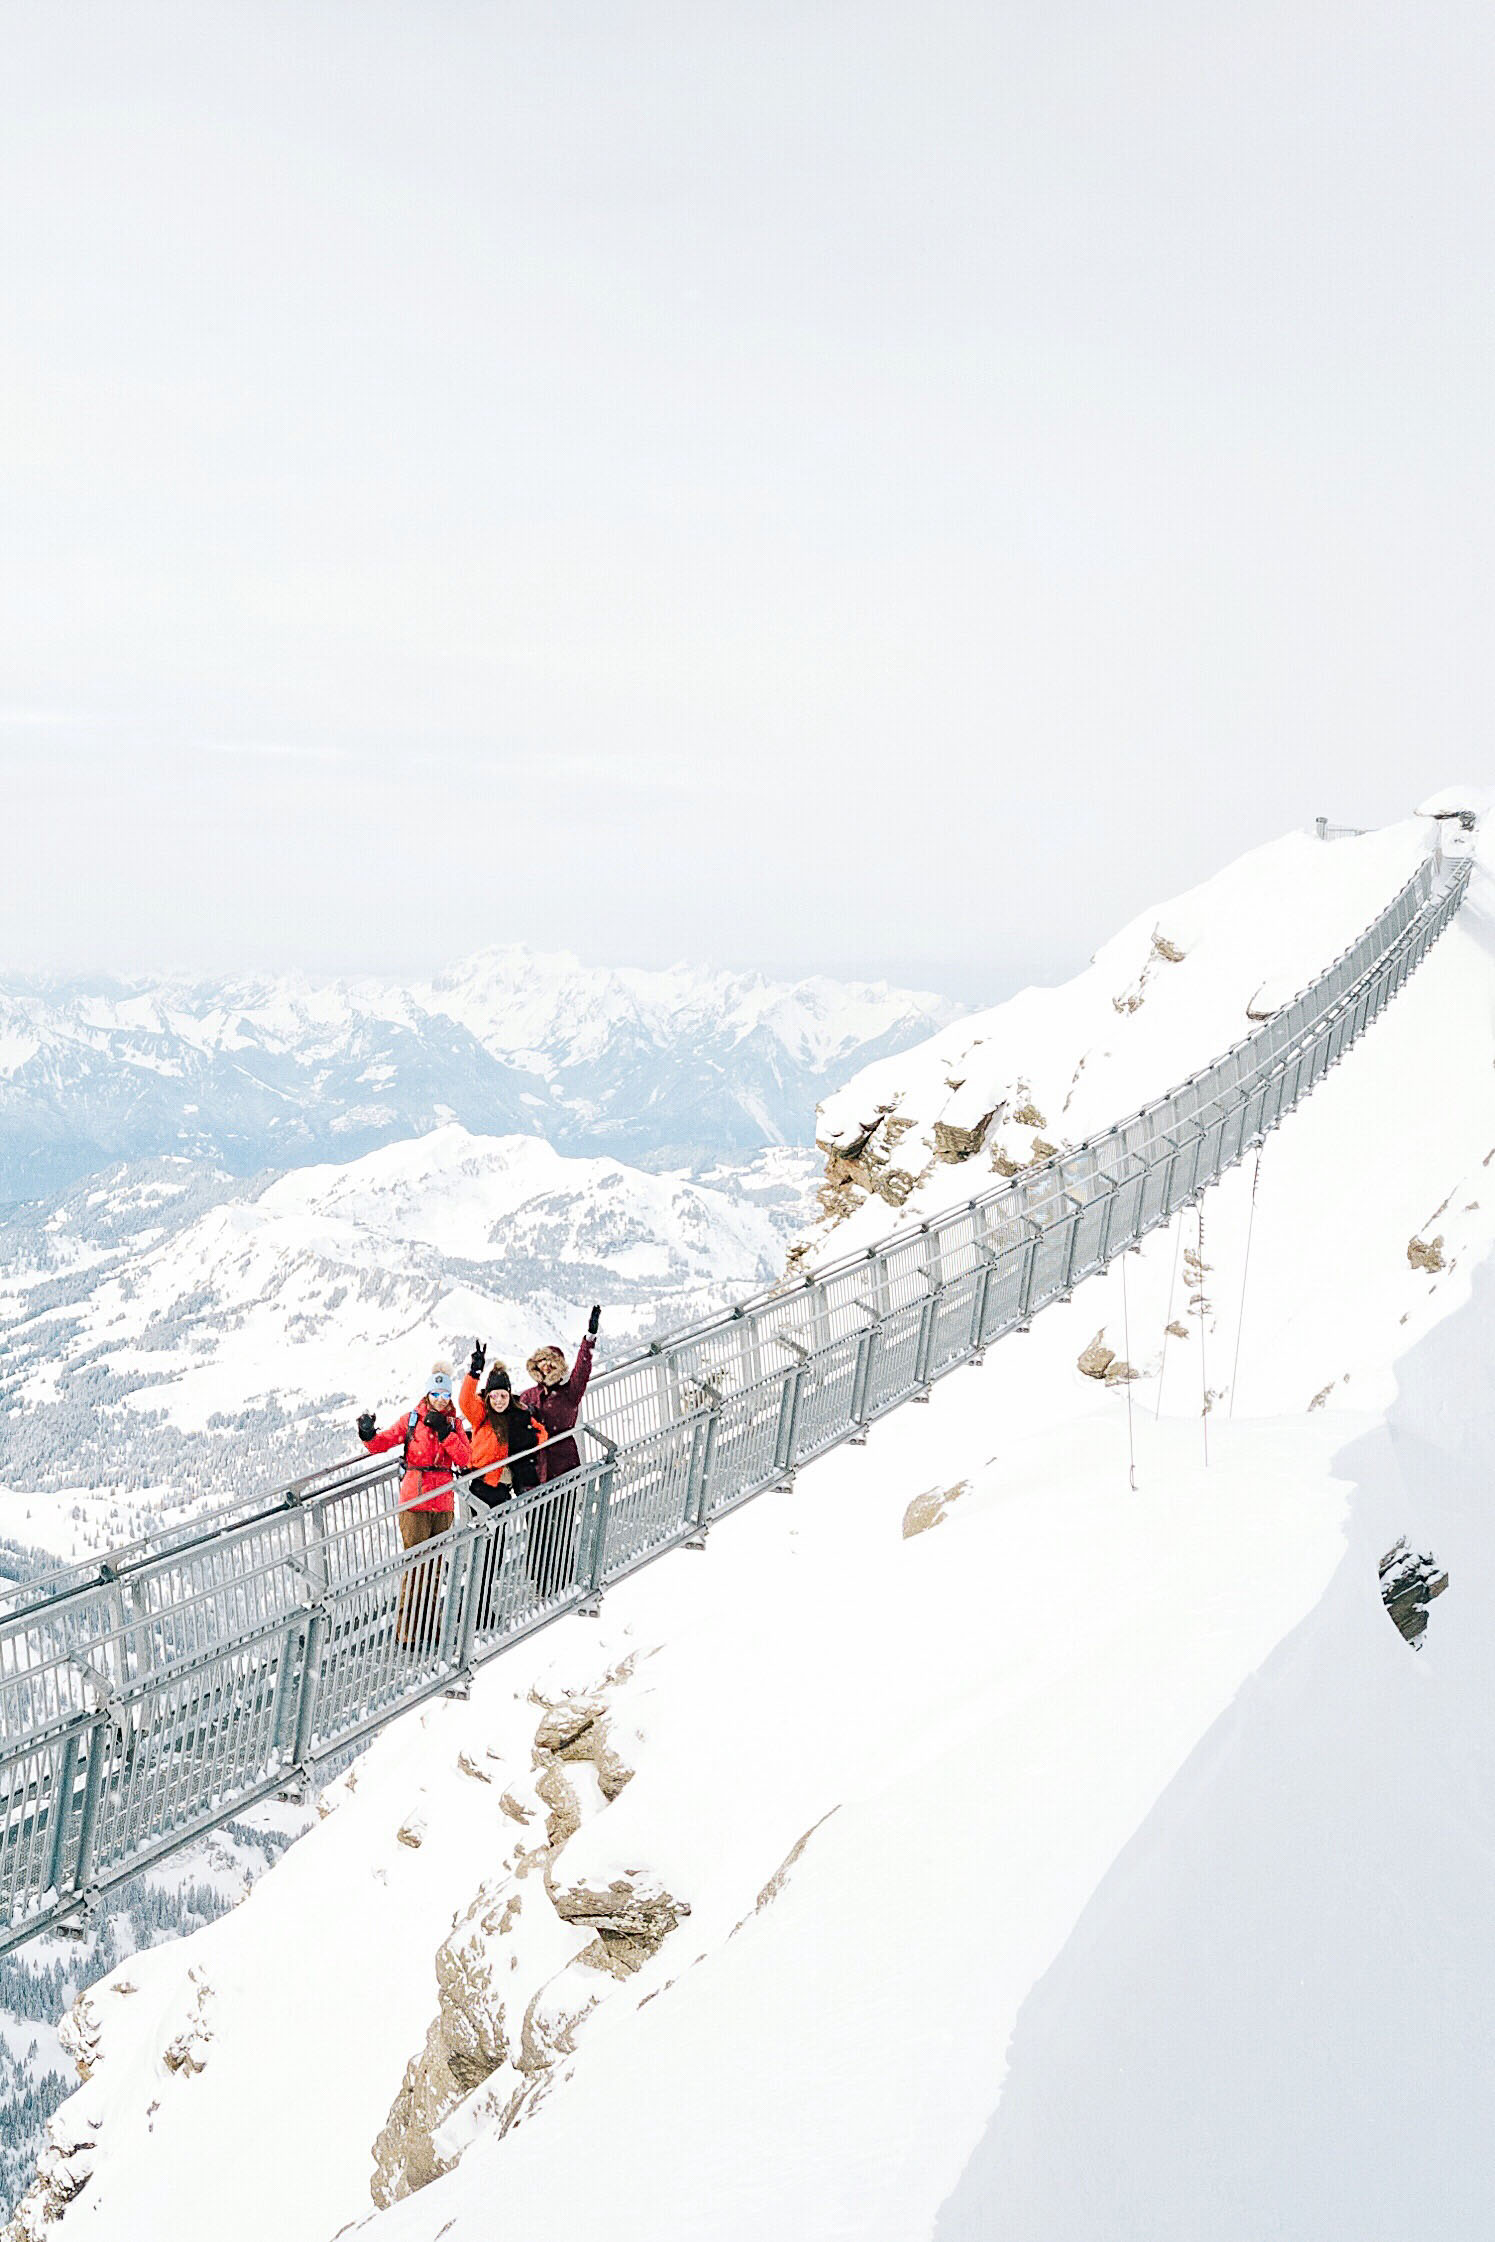 Switzerland is the perfect place to spend a 7 day Europe trip